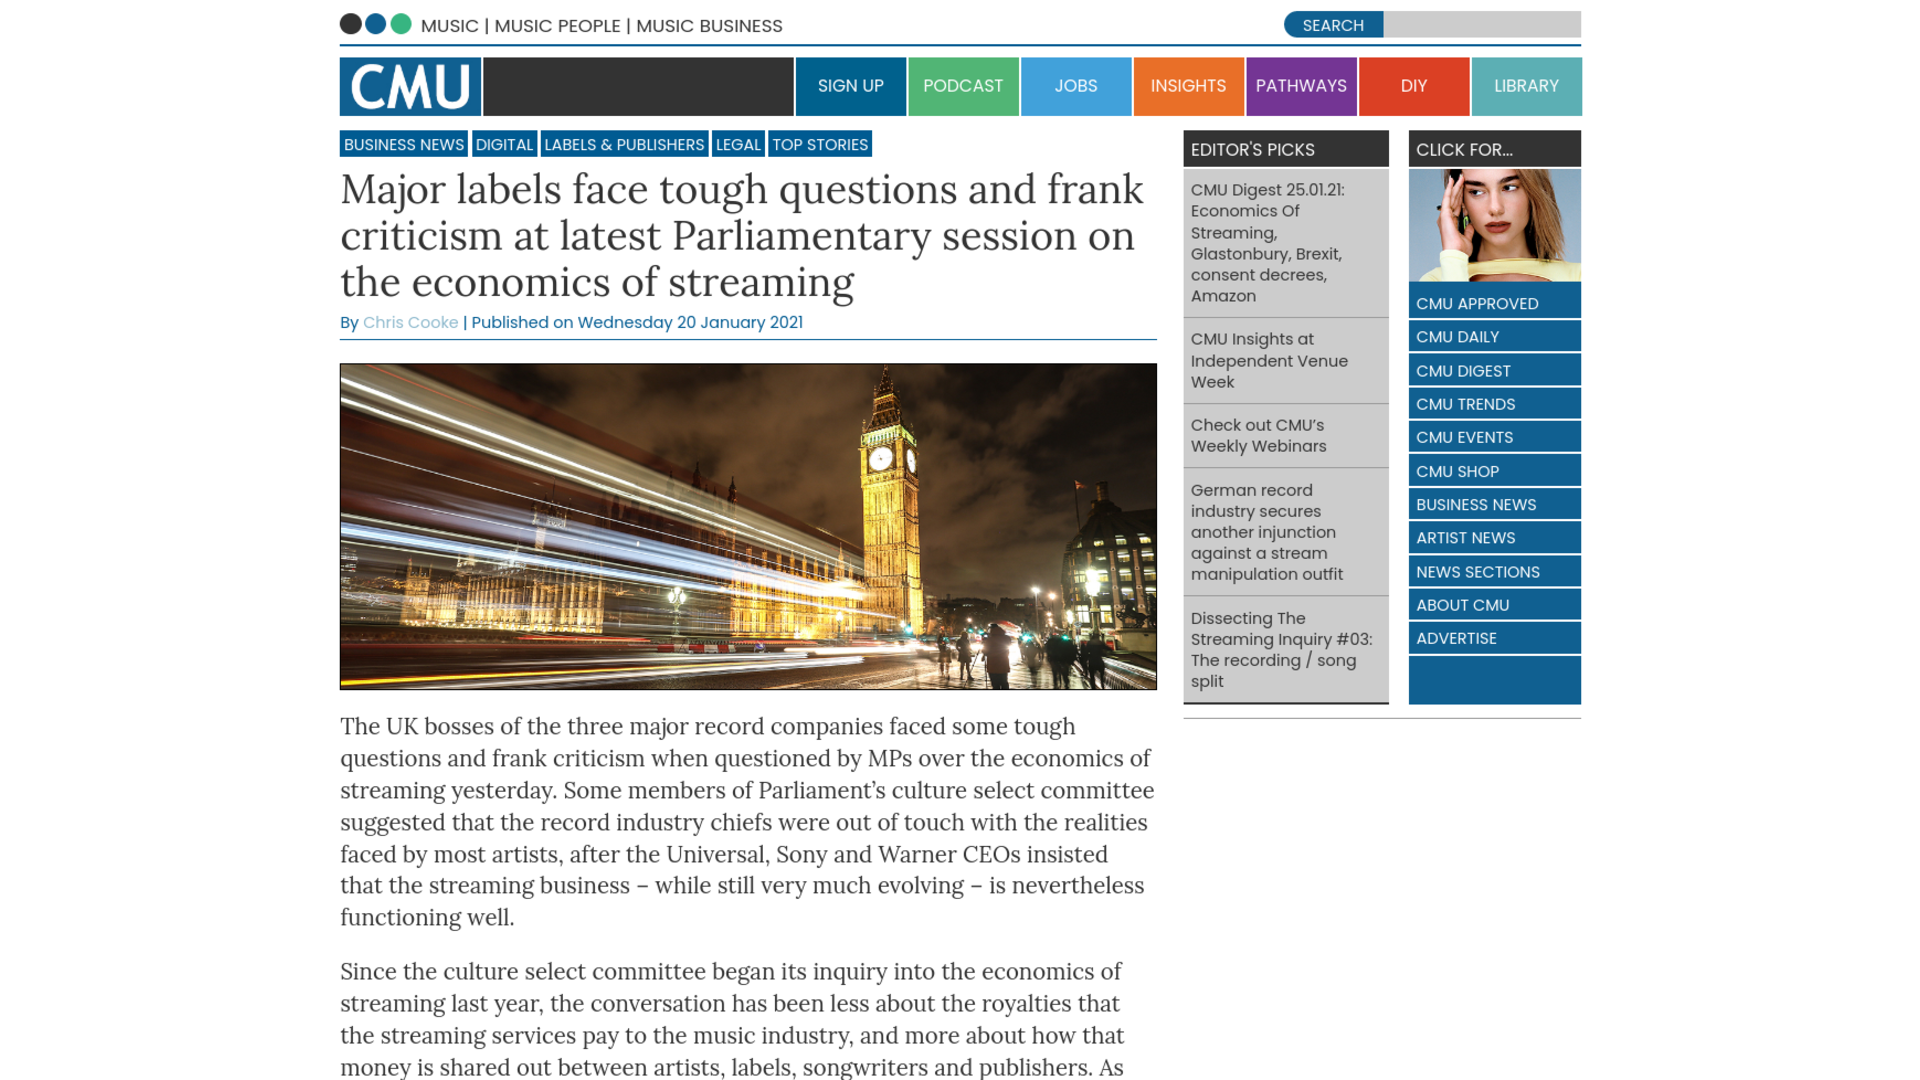 Fairness Rocks News Major labels face tough questions and frank criticism at latest Parliamentary session on the economics of streaming